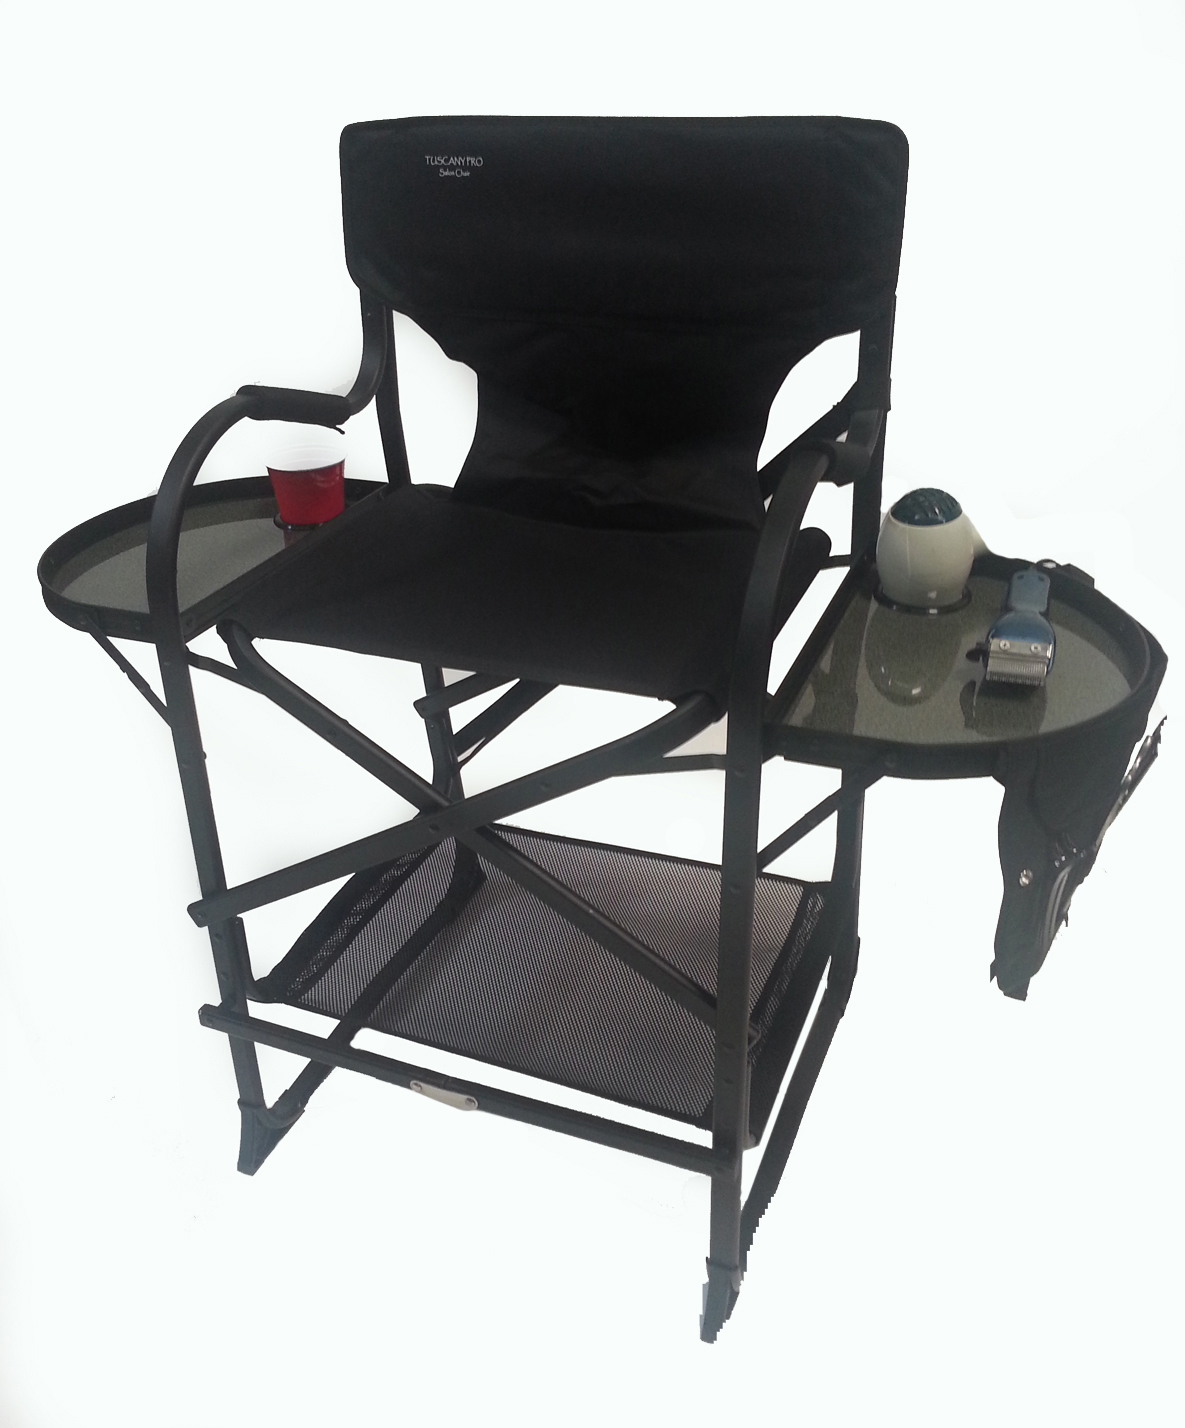 counter height directors chair timber ridge zero gravity with side table mid size salon makeup by pacific imports